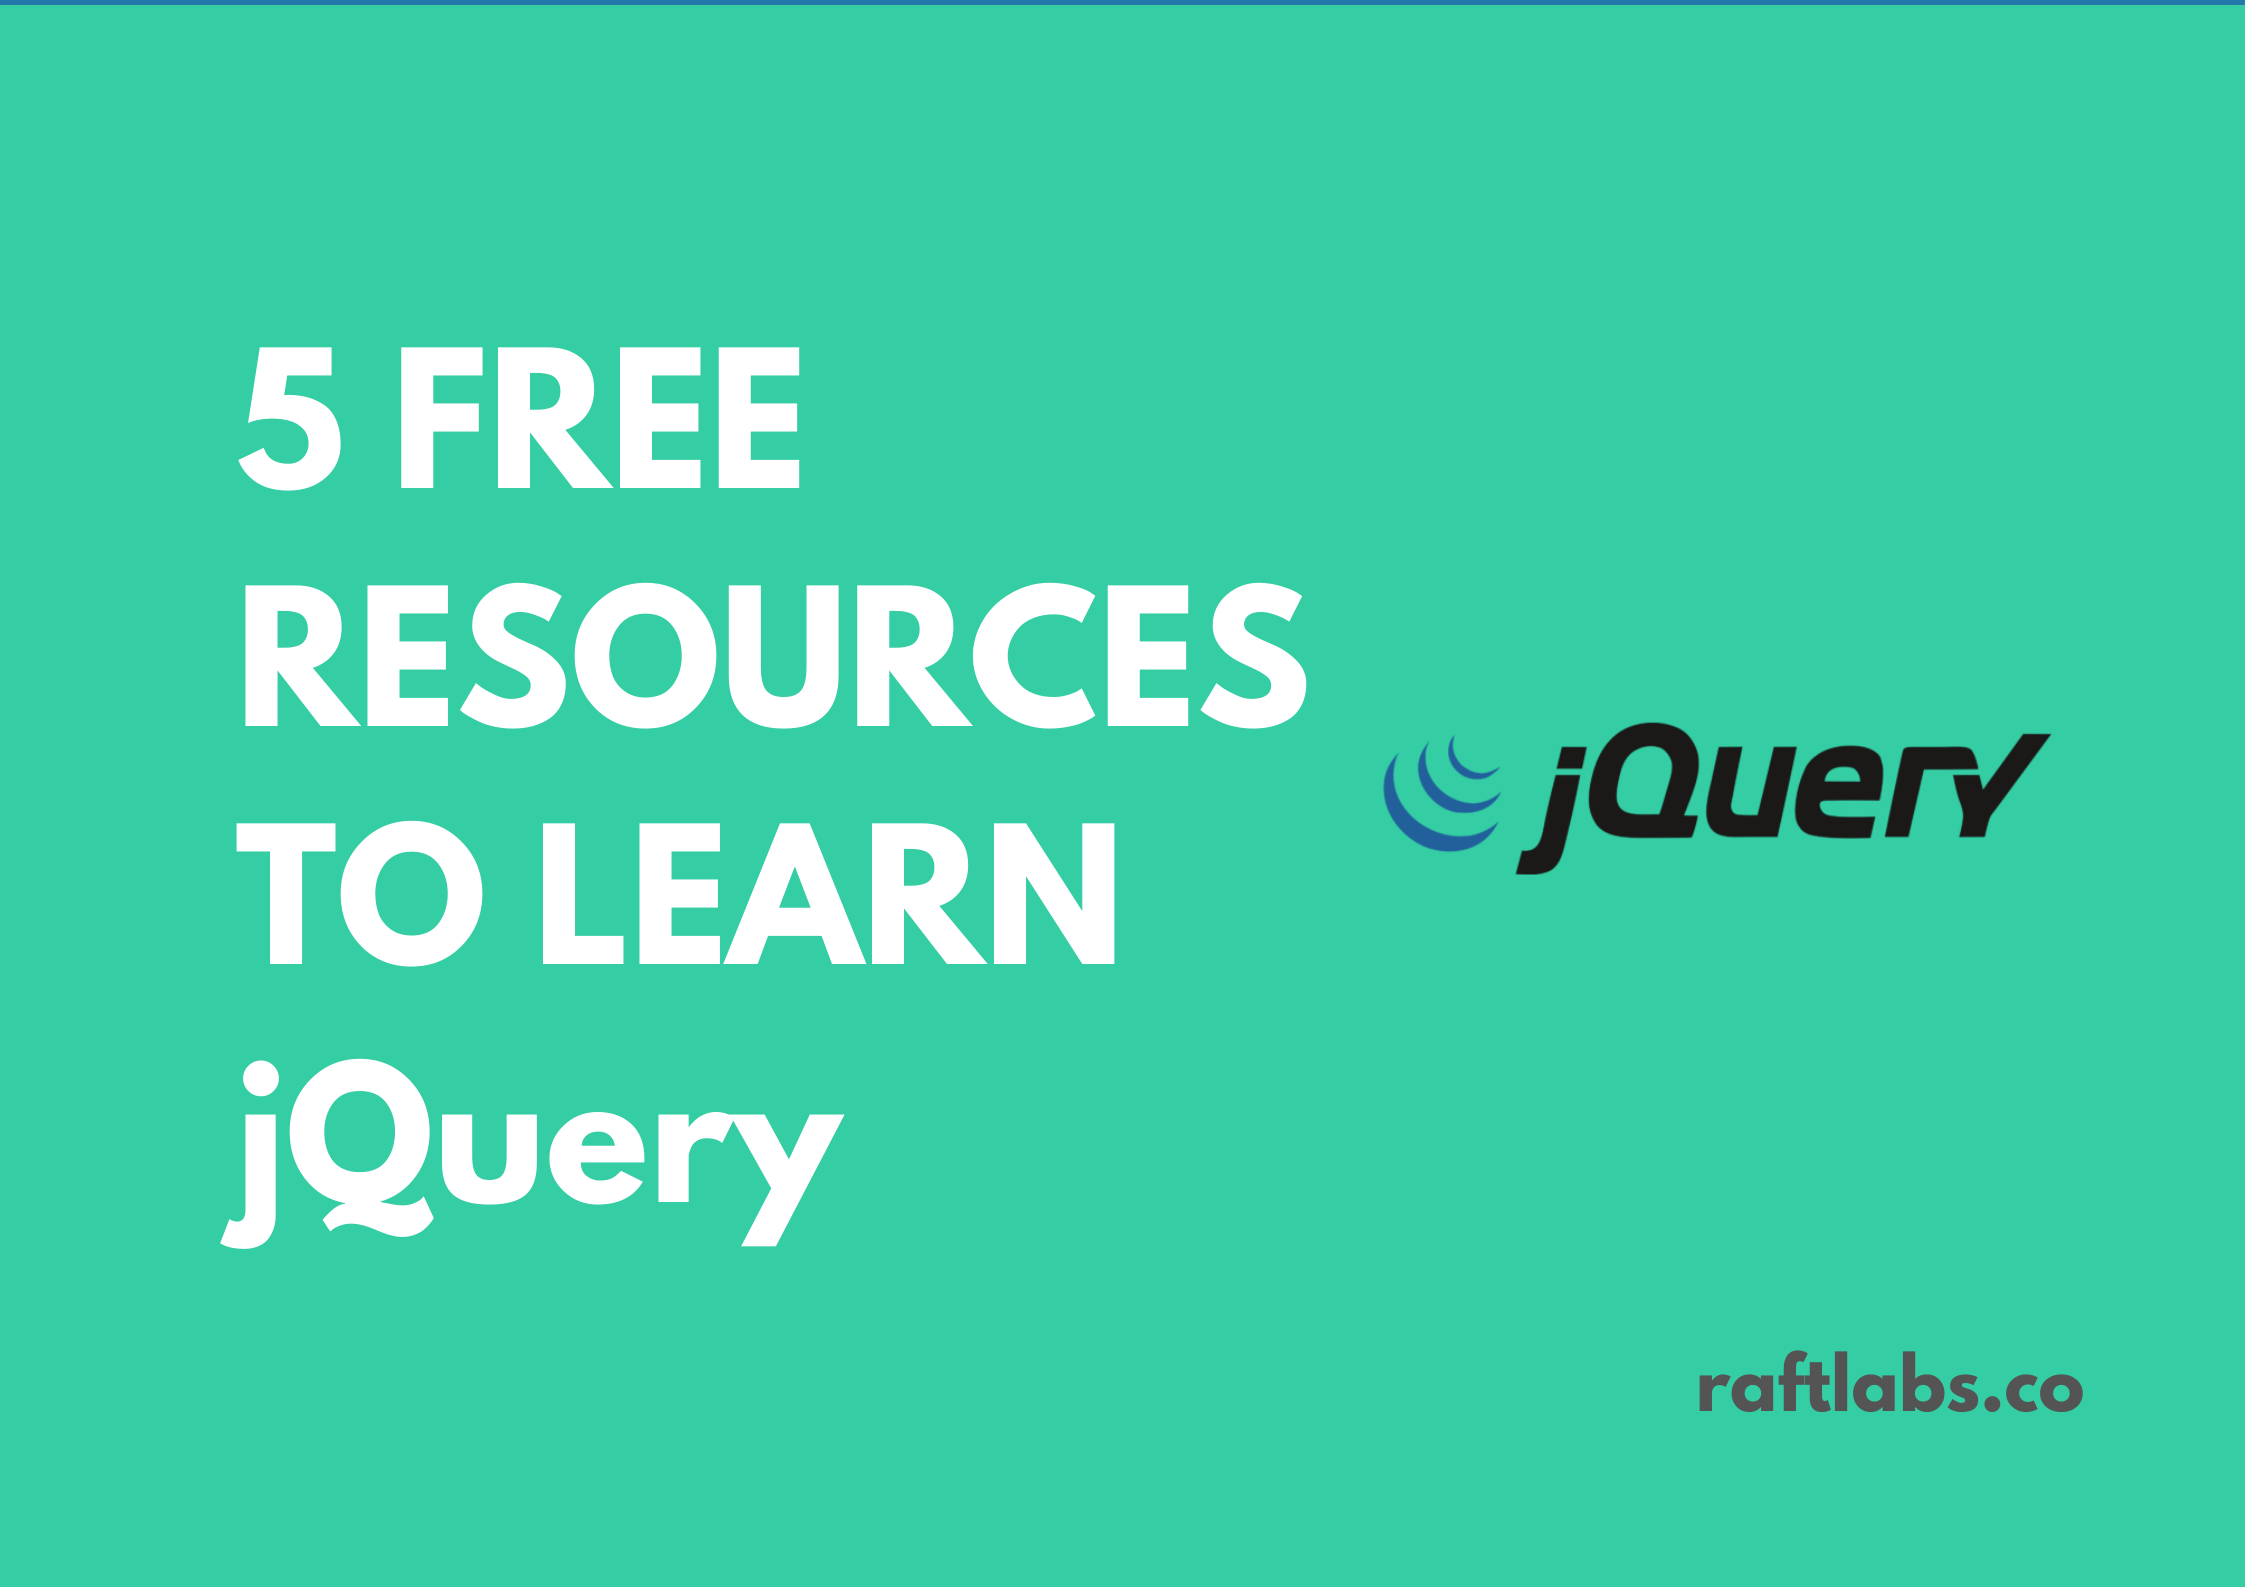 5 FREE Resources to learn jQuery with jQuery logo - raftlabs.co